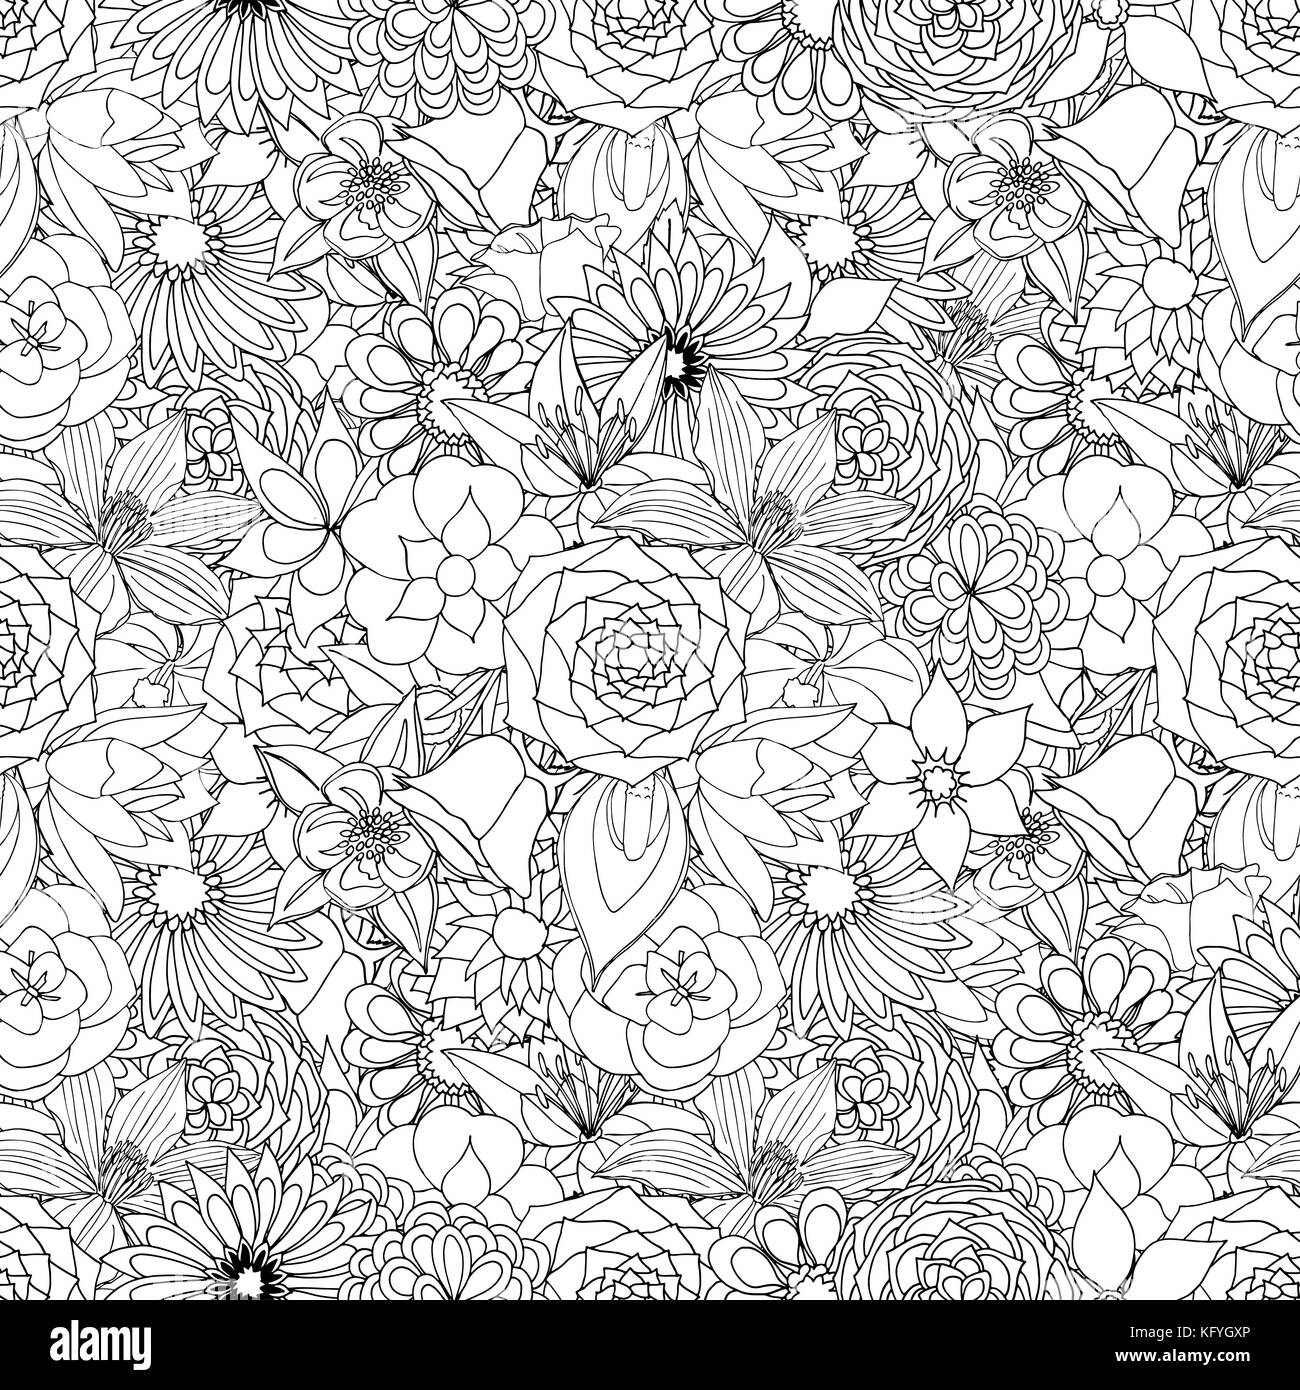 Floral Seamless Pattern Background With Leaves Doodles Ornament